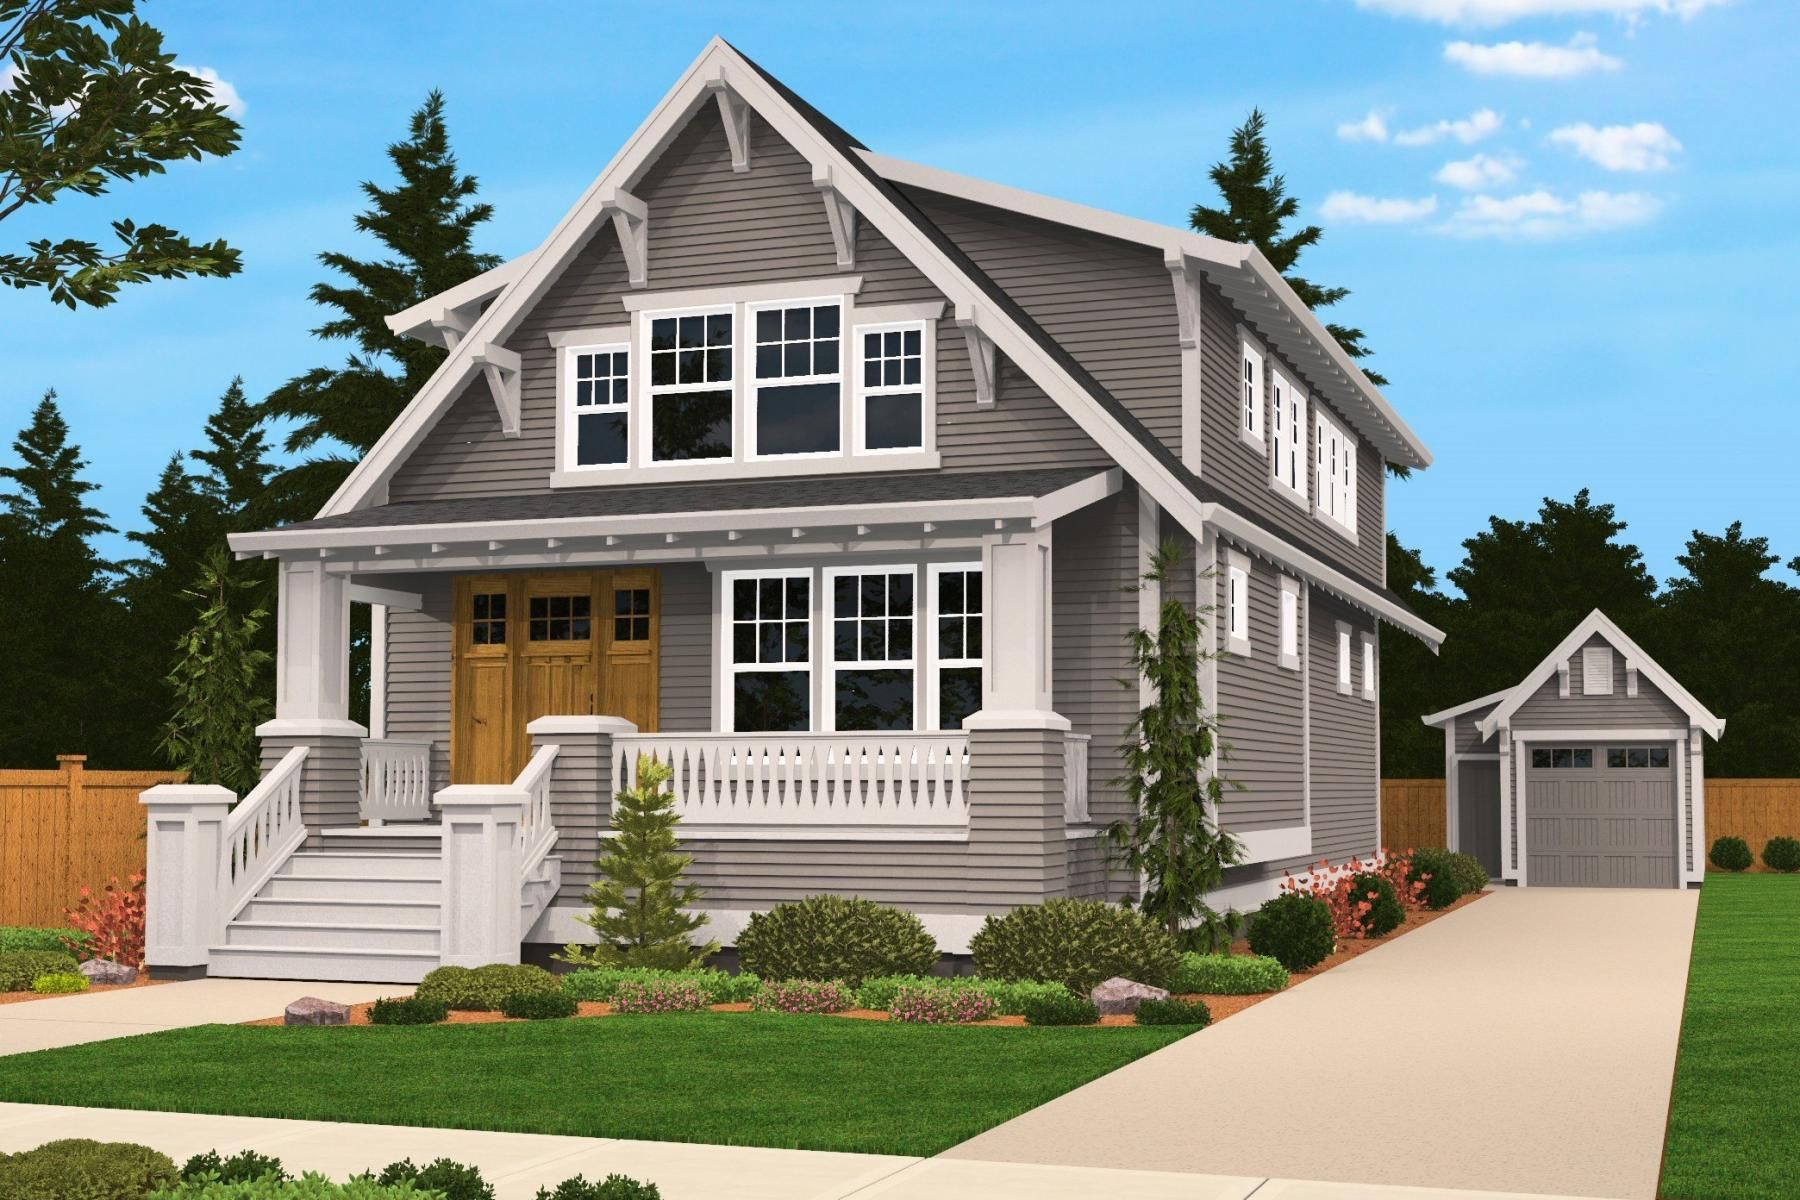 House Plan Square Feet Craftsman House Plans Cottage House Plans Craftsman House